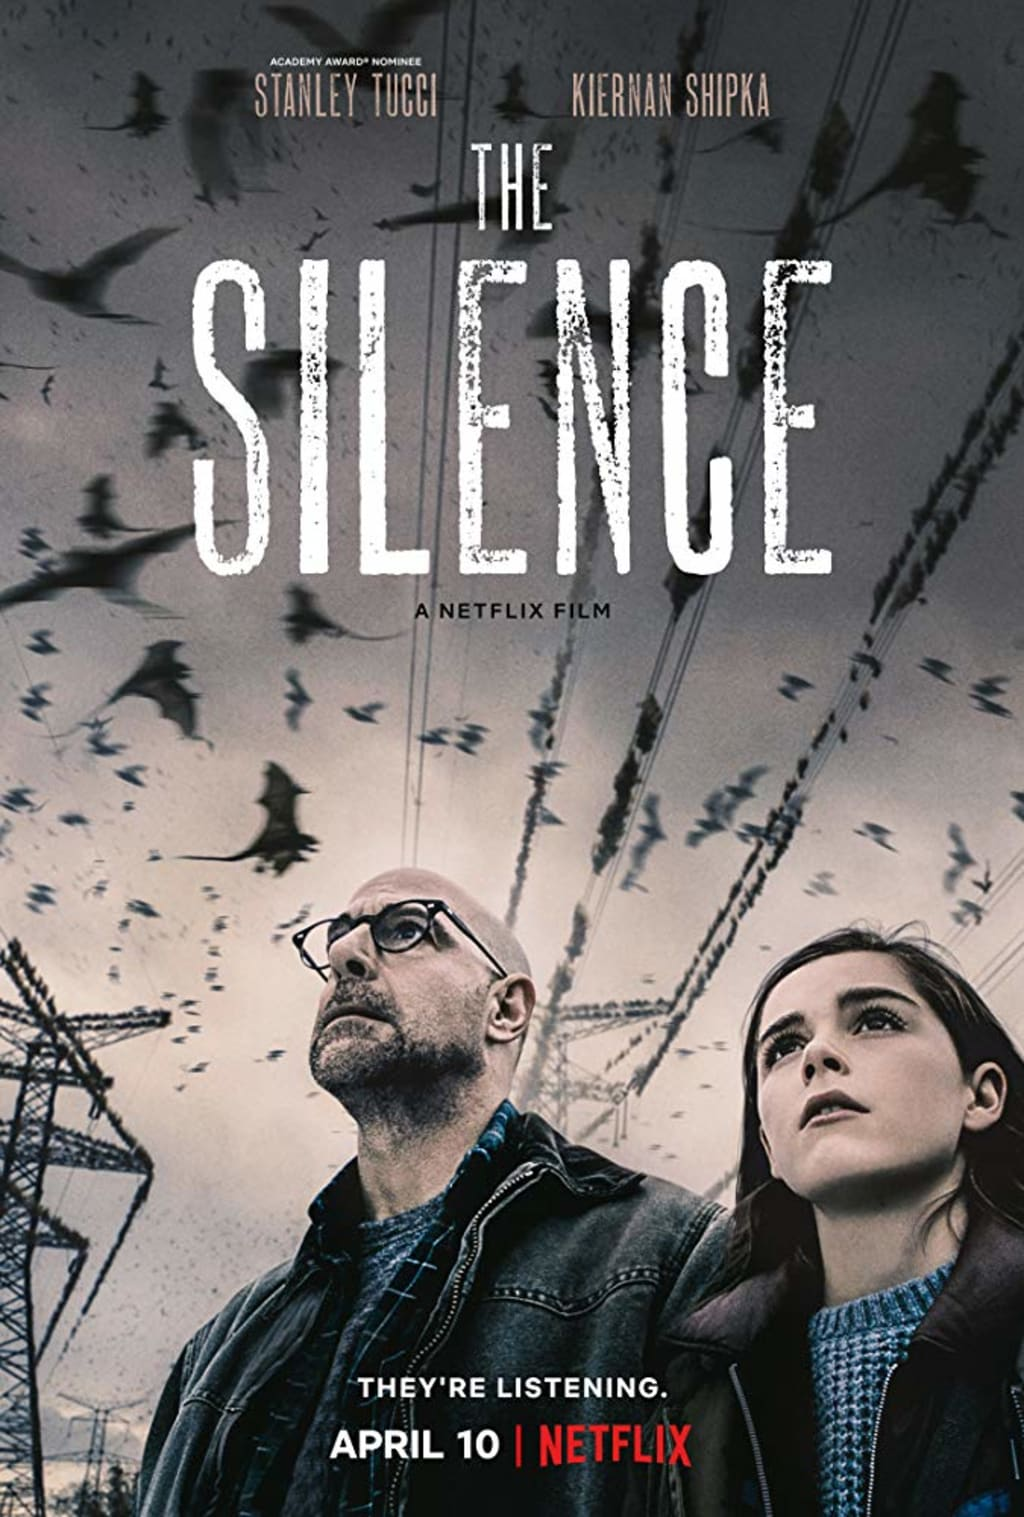 Reed Alexander's Horror Review of 'The Silence' (2019)